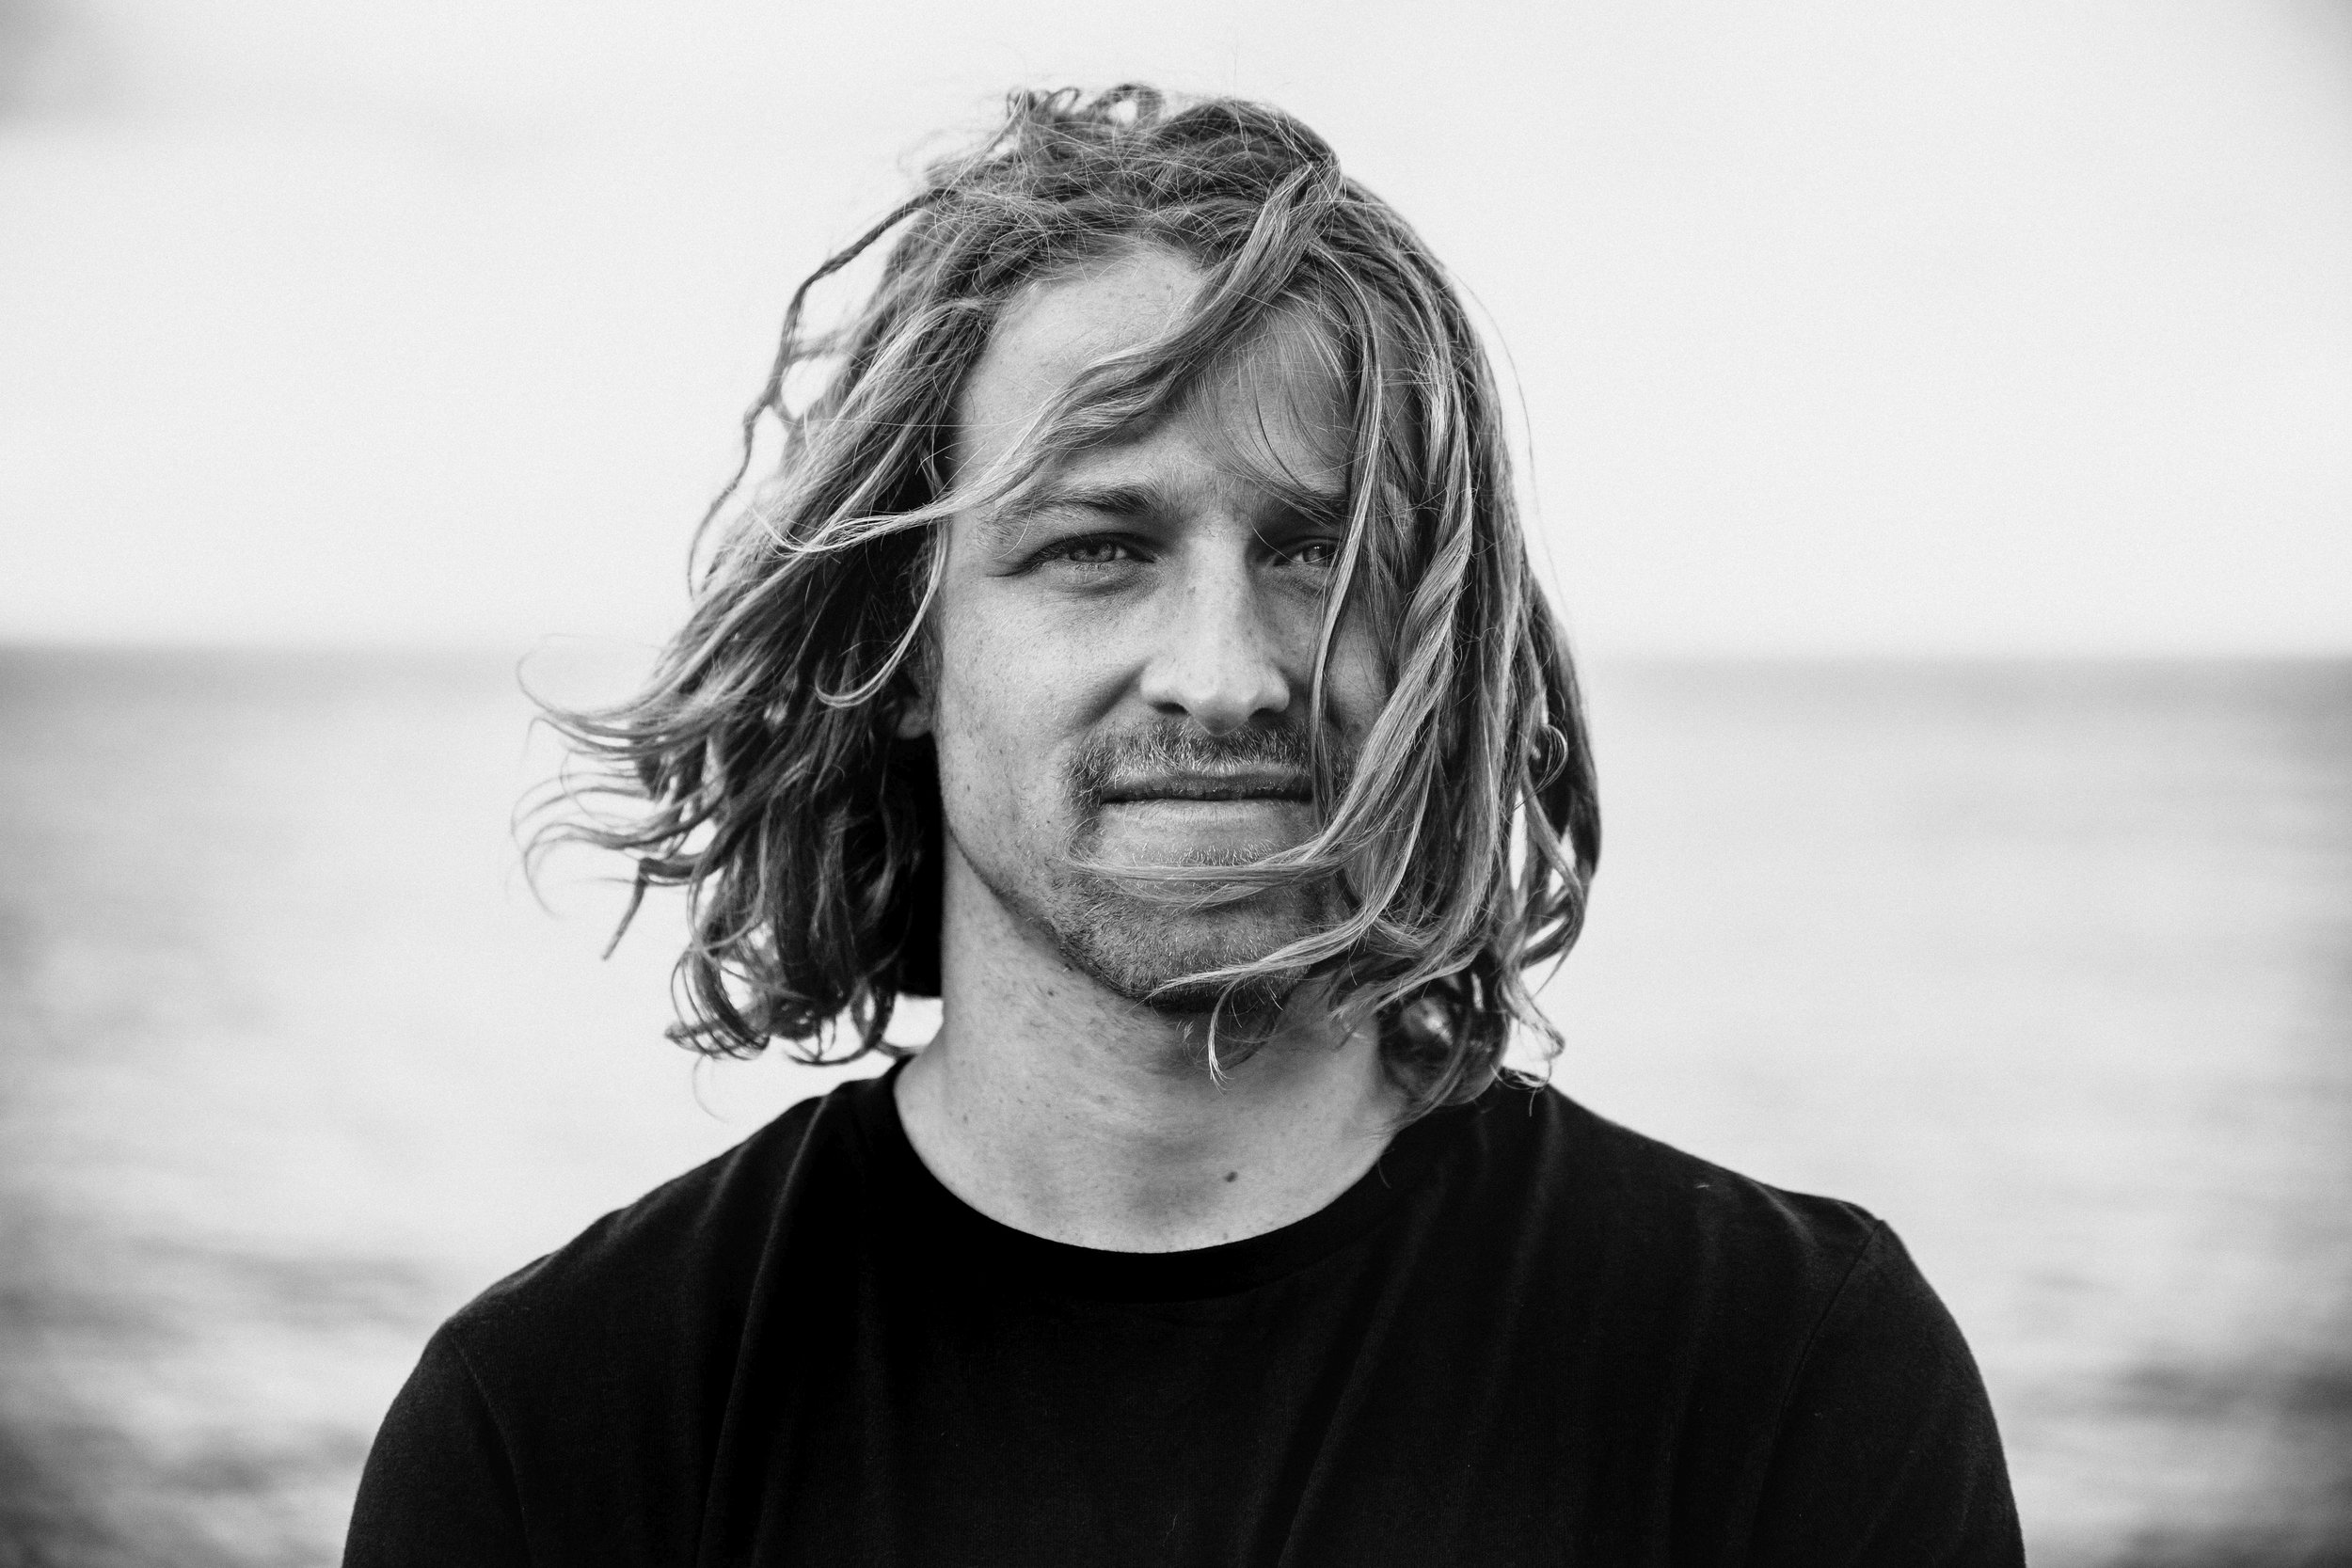 Surfer, photographer, writer, speaker, and absolute legend @camgreenwood